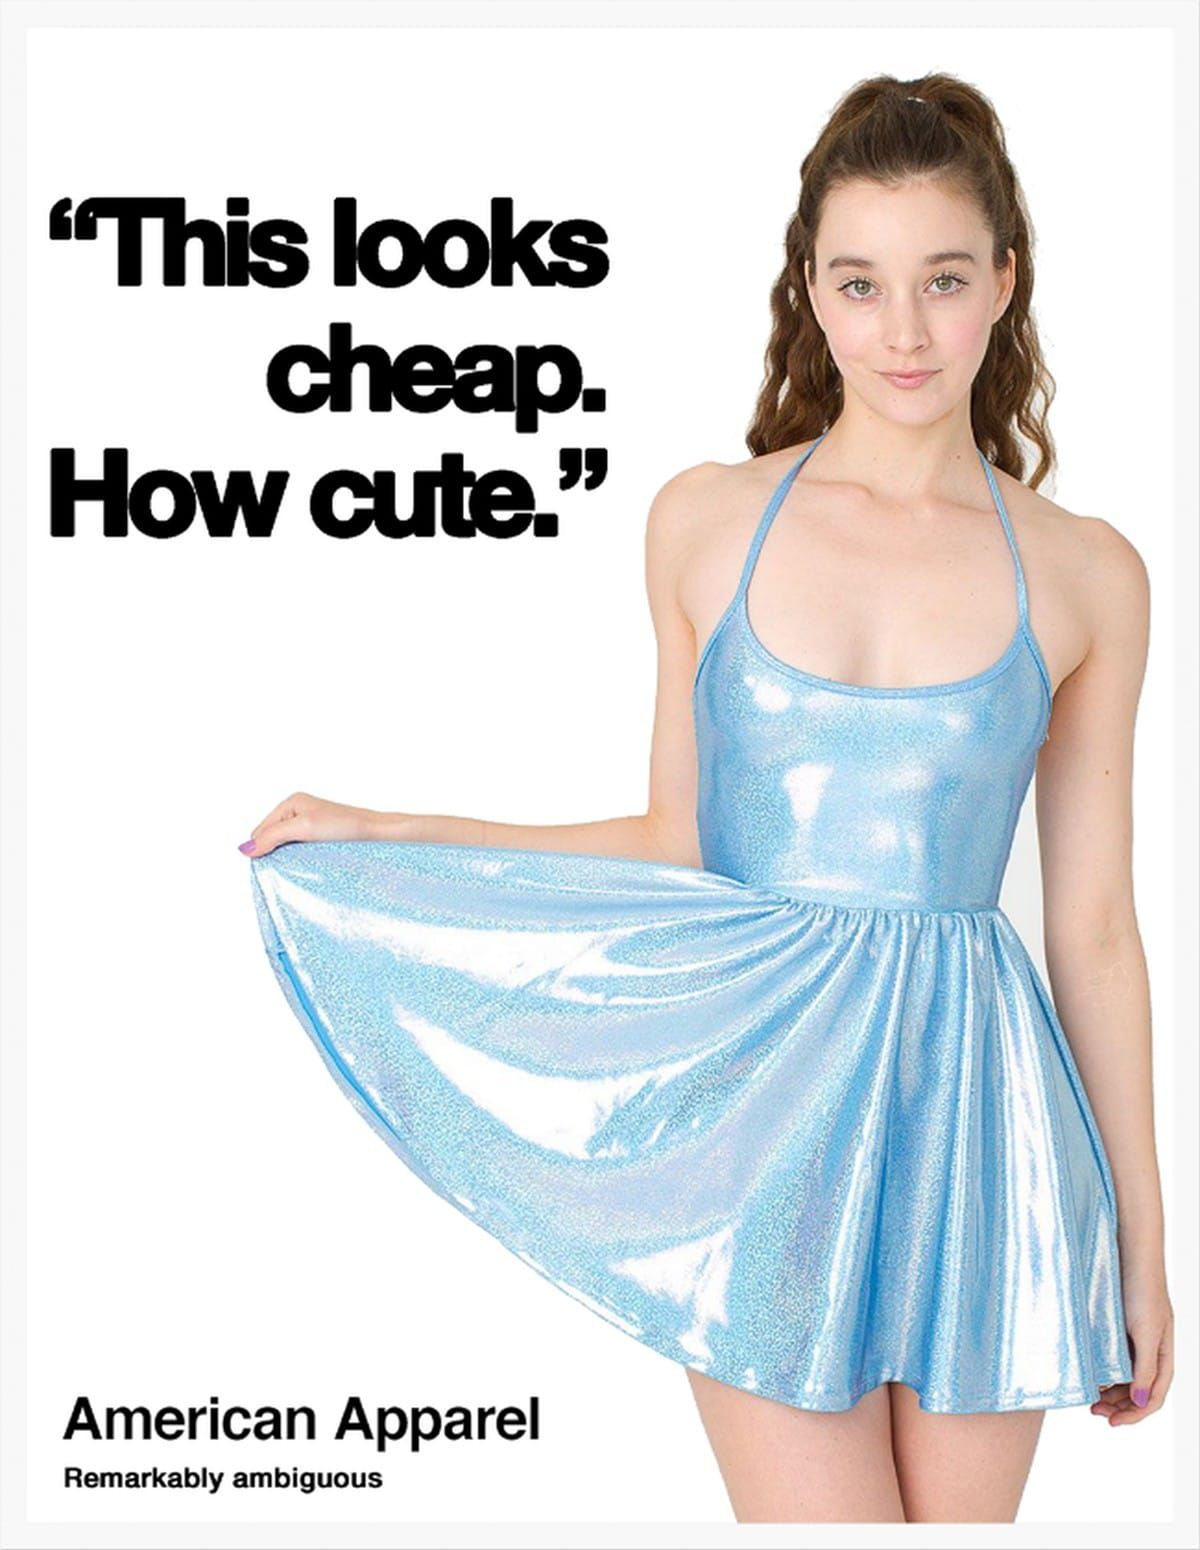 """the case of american apparel a clothing American apparel is giving shoppers who want their goods """"made in the  the  site states that the clothes are """"identical in quality"""" and ethically."""